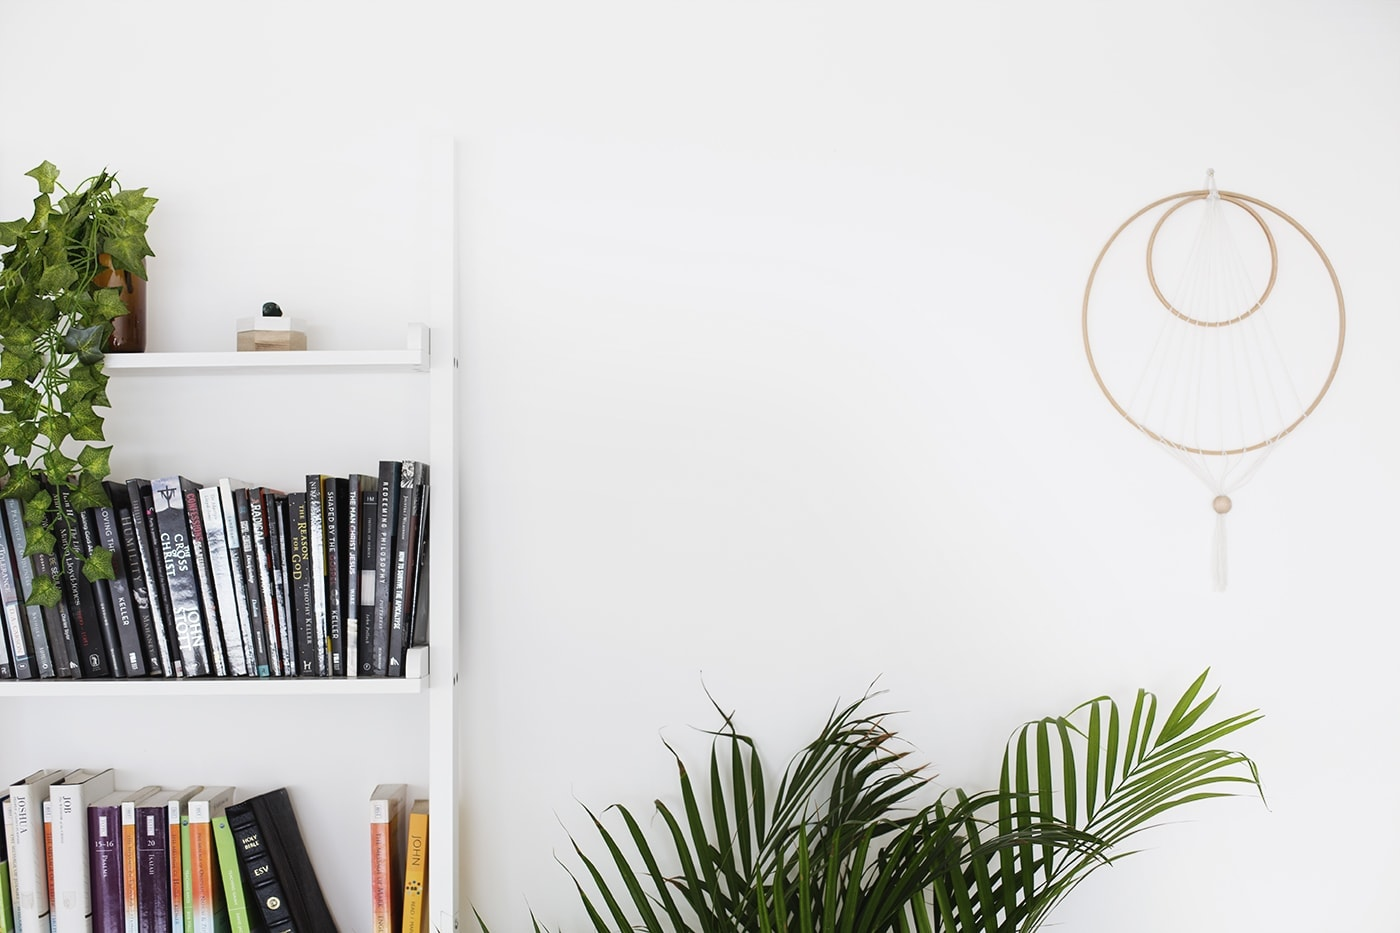 Most homes have an office and it can be frustrating when you can t - When We First Moved Into Our Flat The Most Frustrating Part Was Waiting To Have The Time To Tackle Our Workspace The Mezzanine Floor Was Essentially The